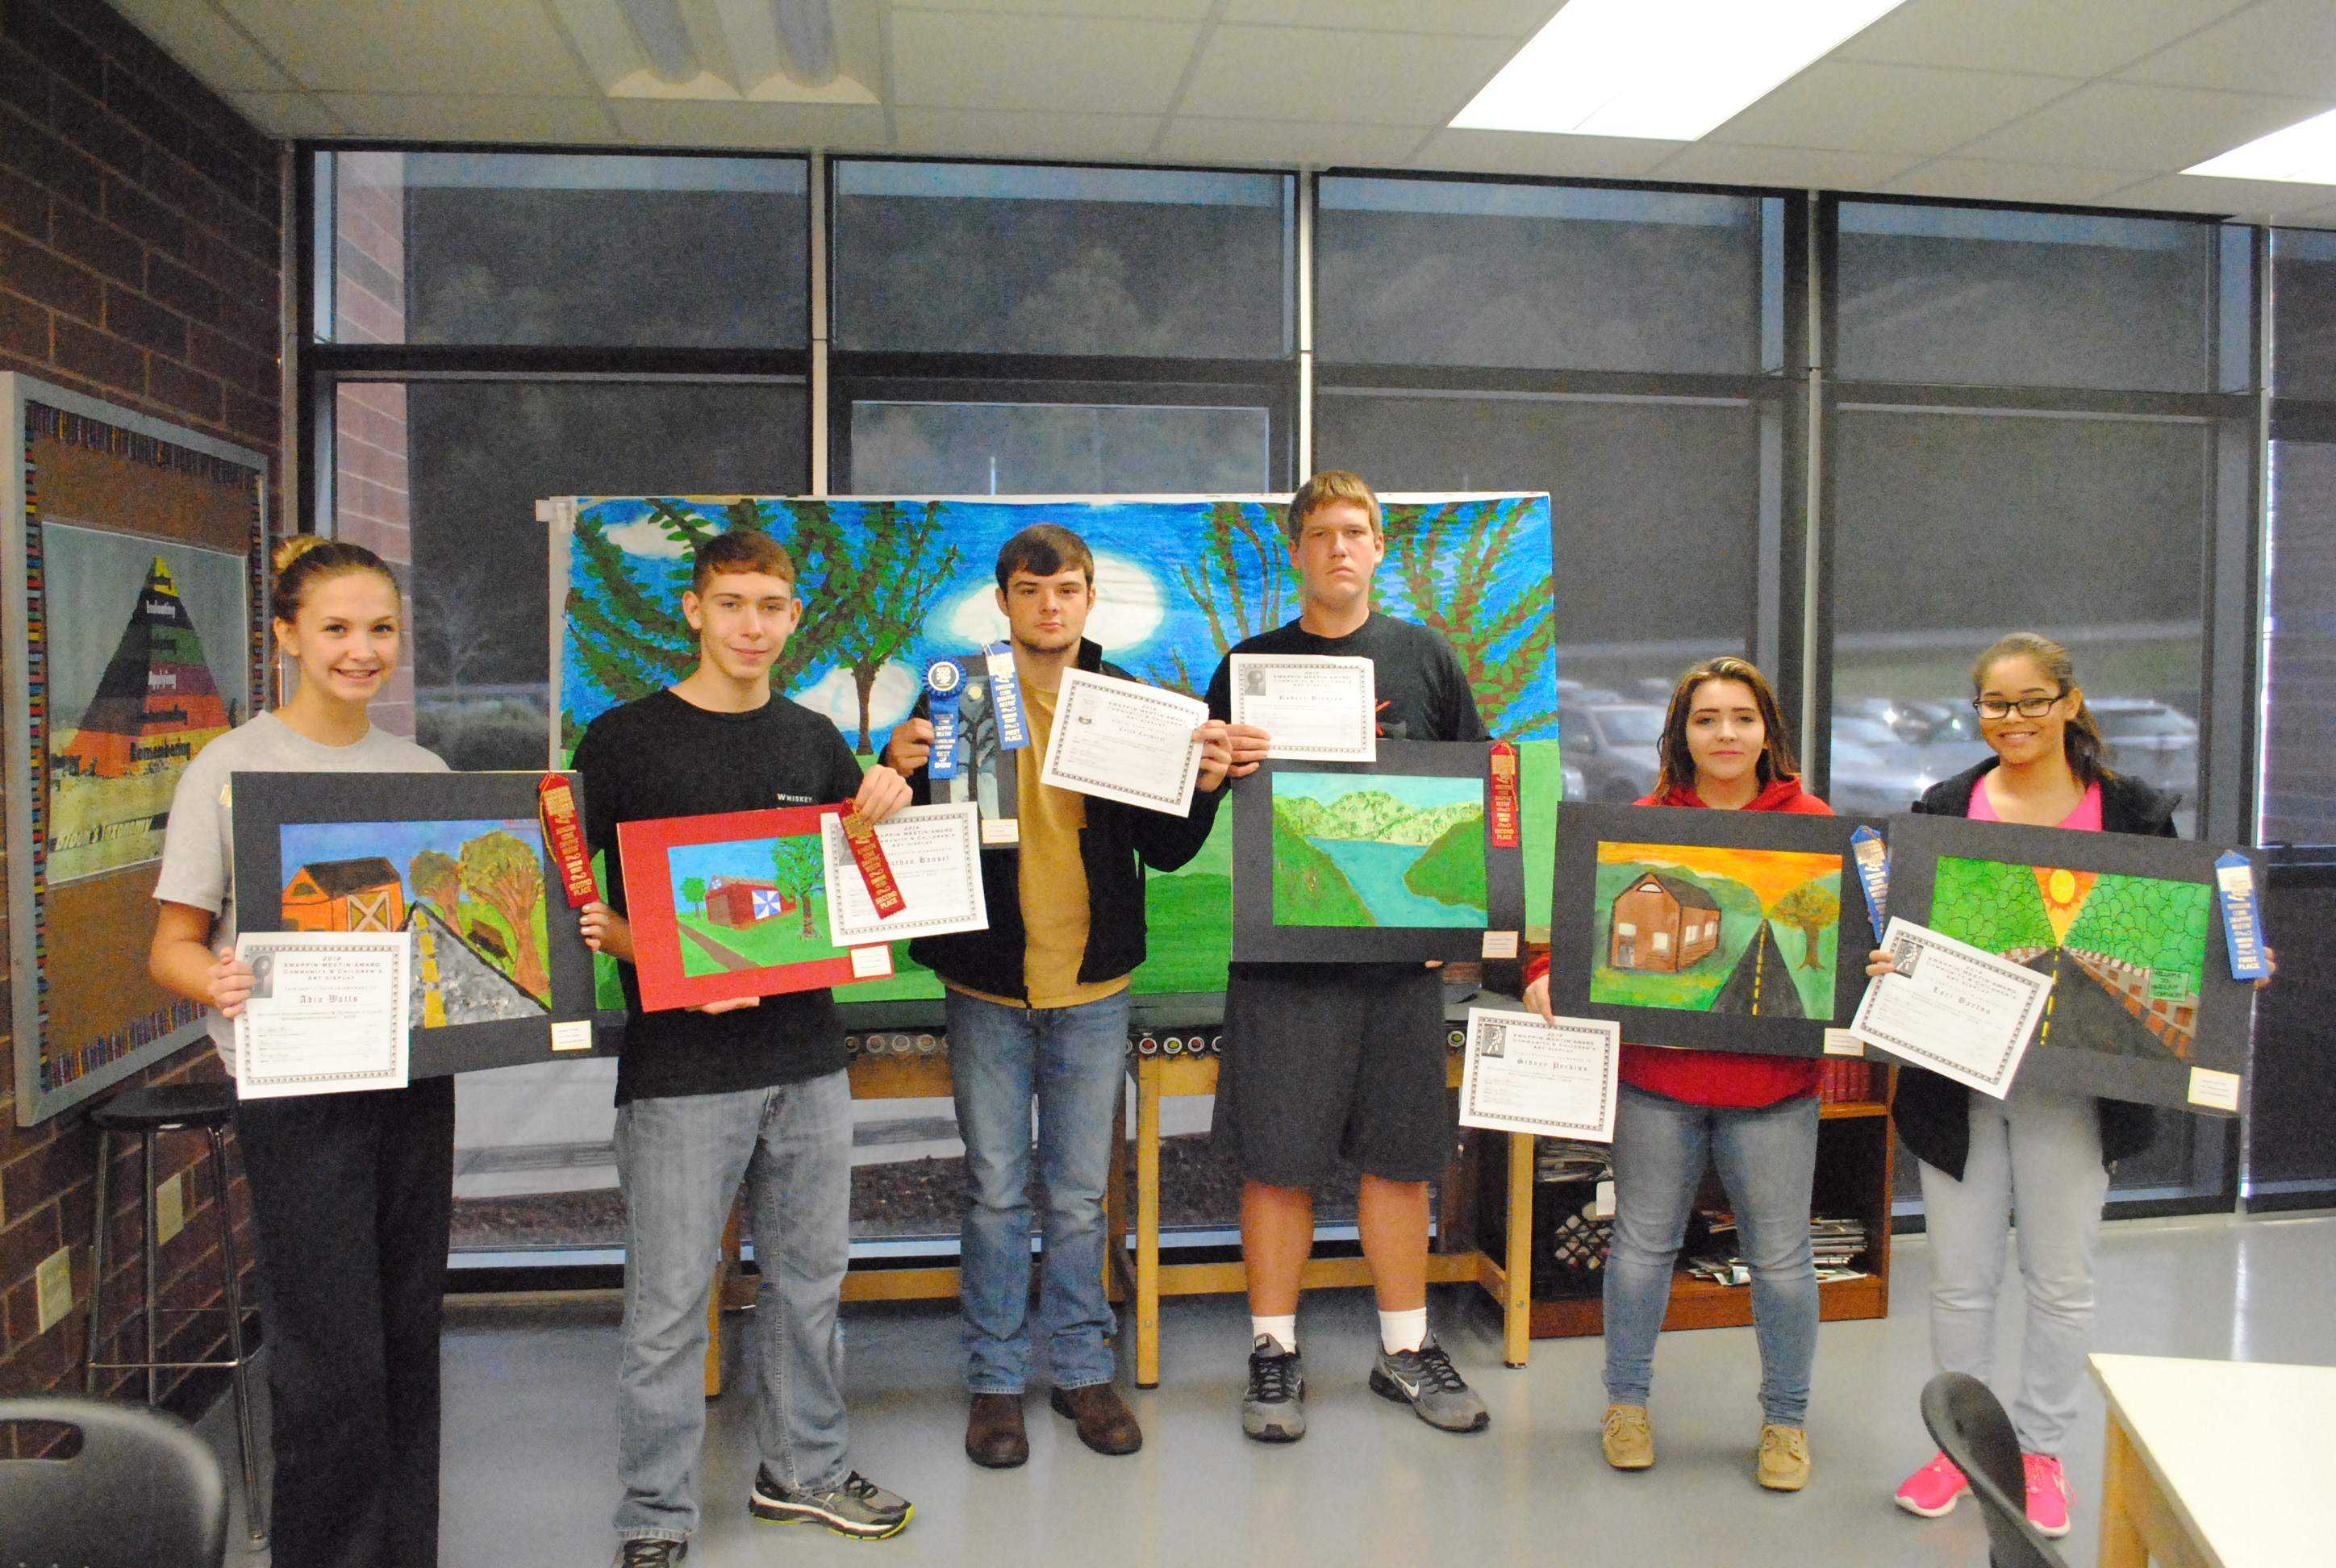 Winners from Harlan County High School during the 52nd annual Kingdom Come Swappin' Meetin' art competition included, from left: Addia Watts, John Hansel, Caleb Carmical, Robbie Blevins, Cydney Perkins and Lori Barton.